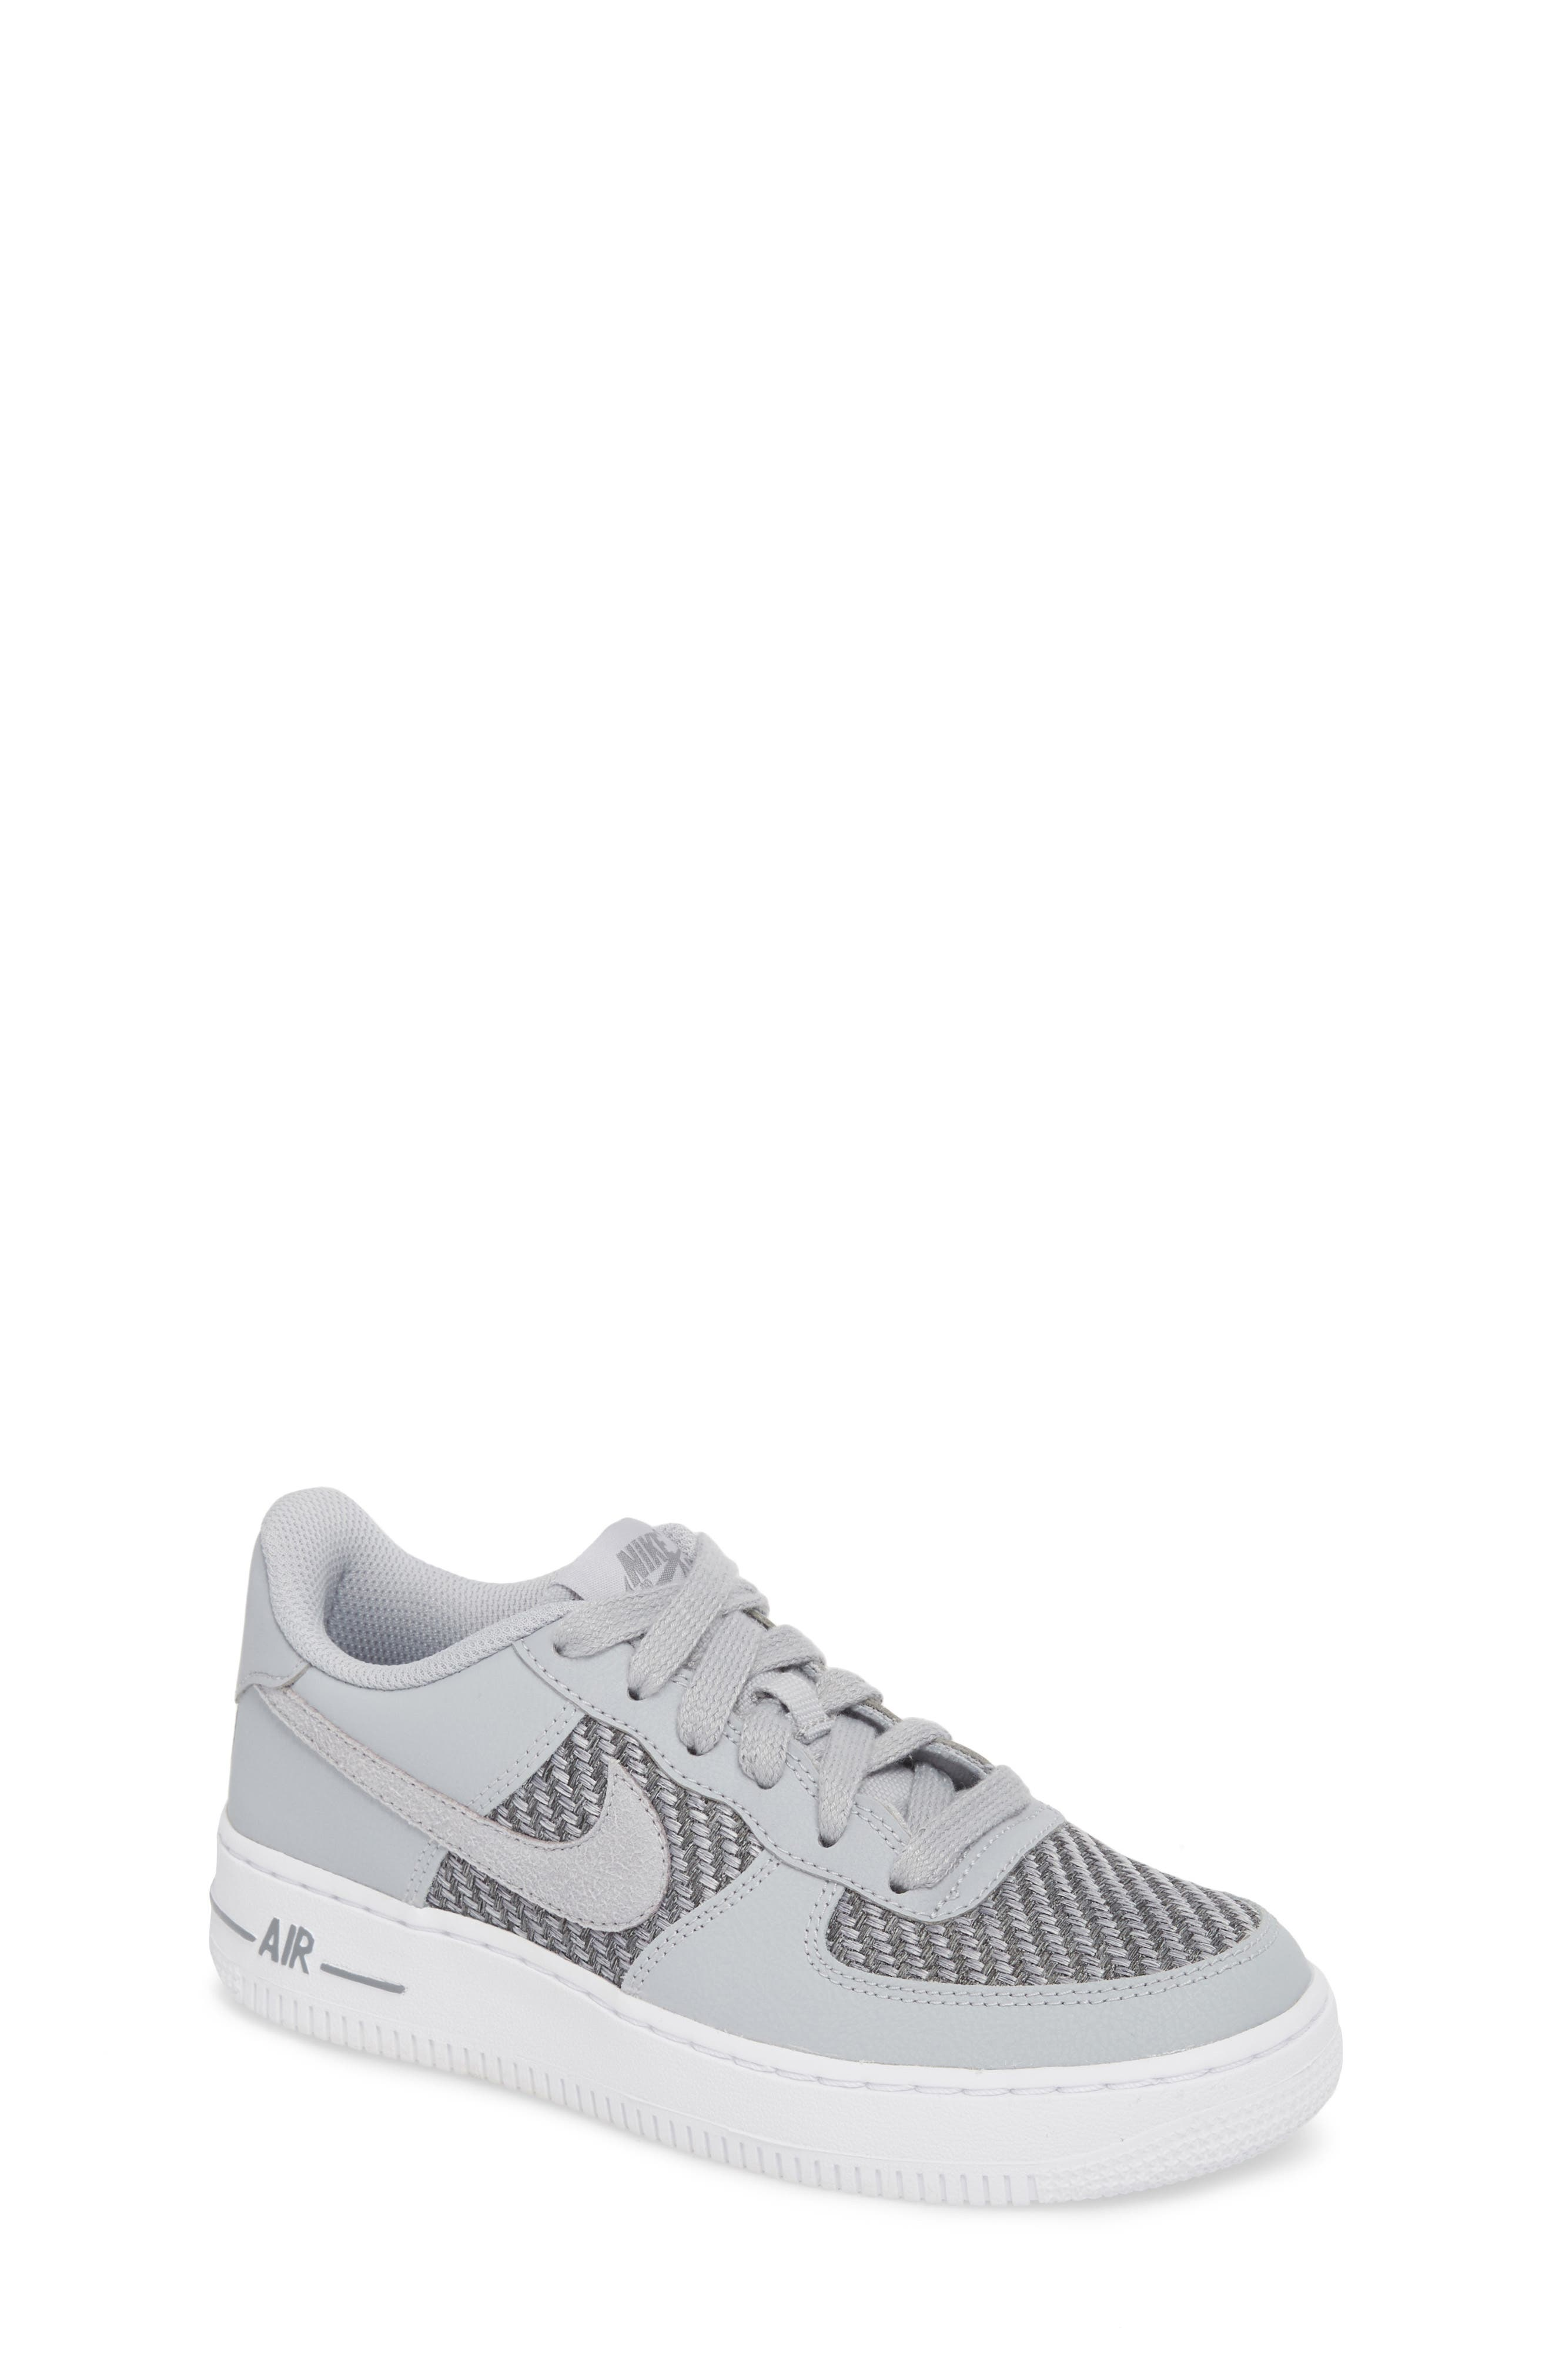 Air Force 1 LV8 Sneaker,                         Main,                         color, Cool Grey/ White